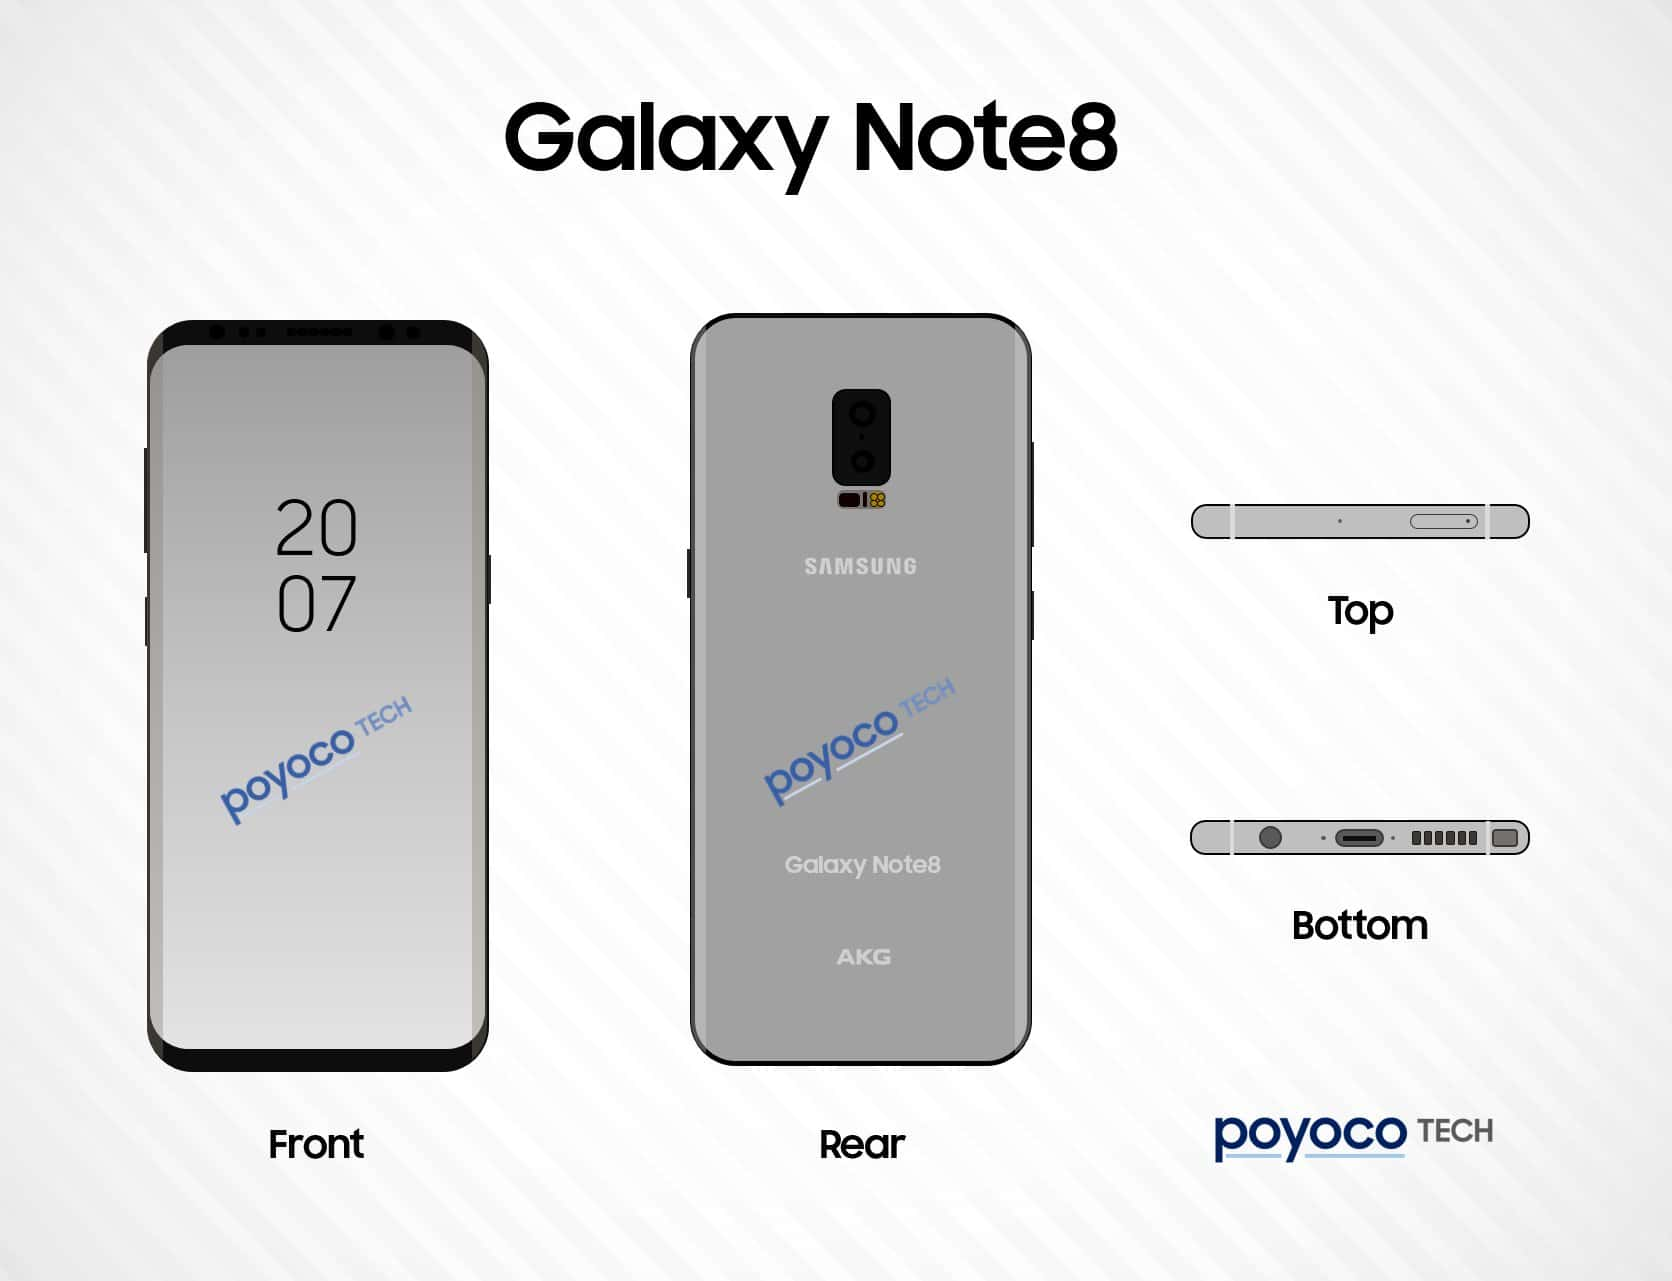 Galaxy Note 8 Poyoco Tech Leak